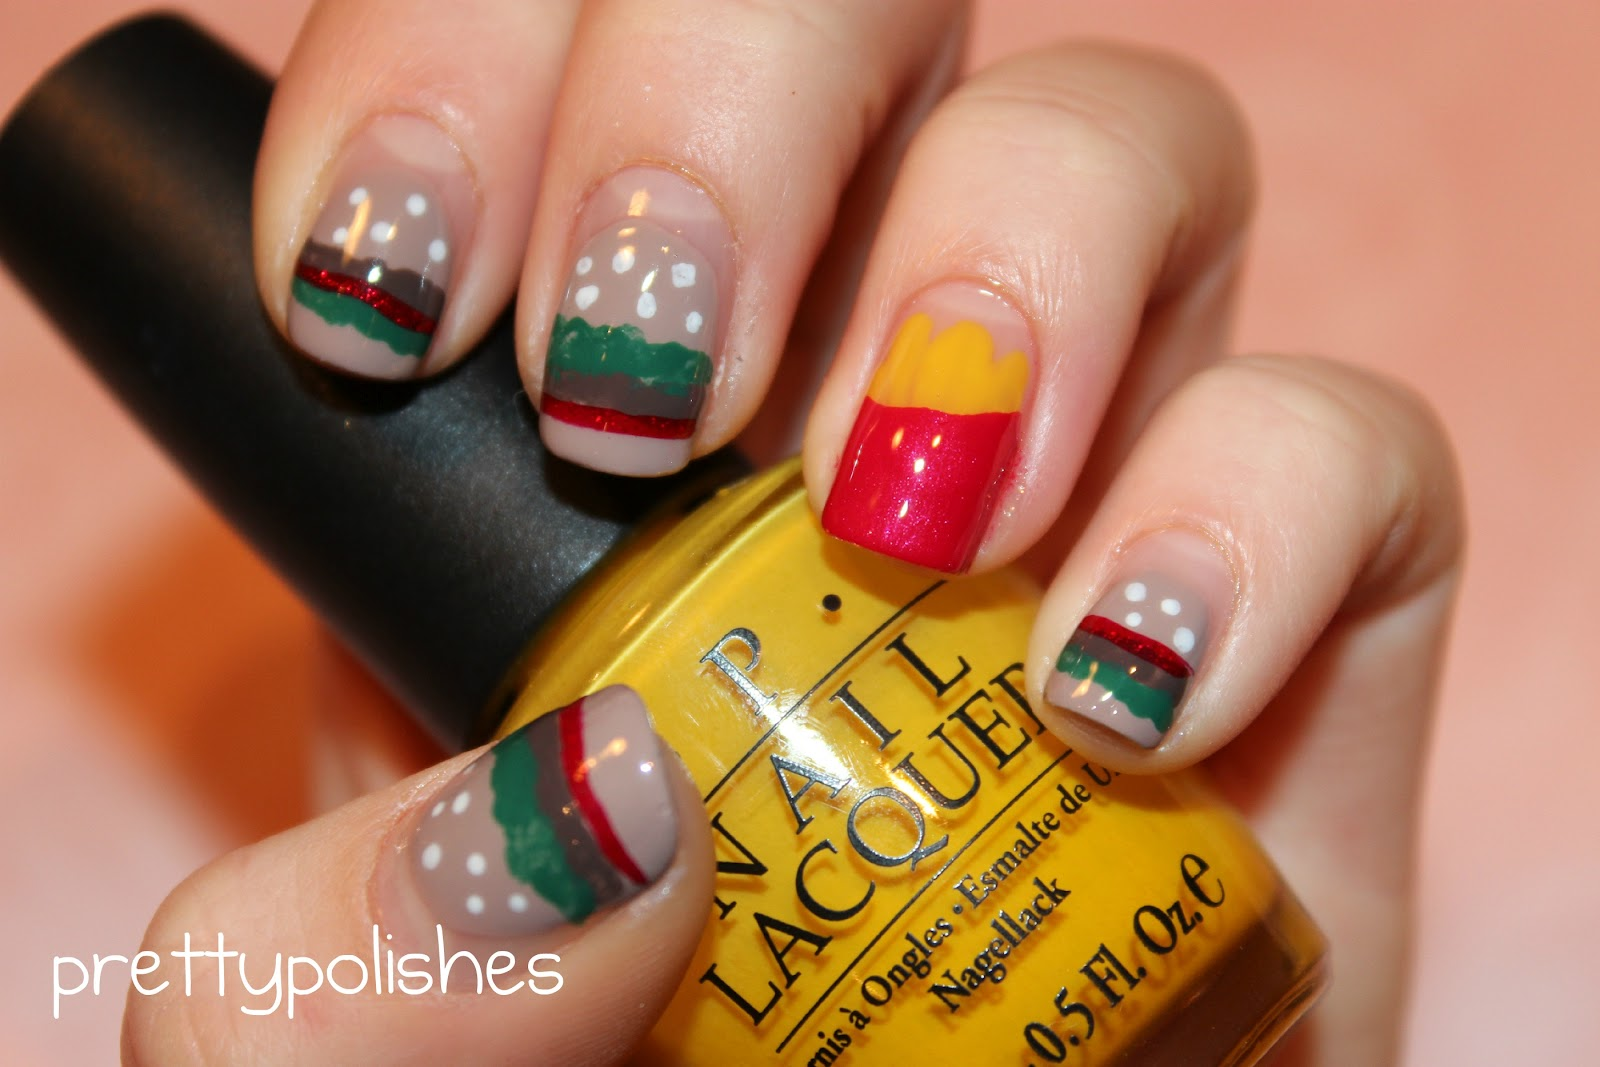 prettypolishes: Burger & Fries Nails